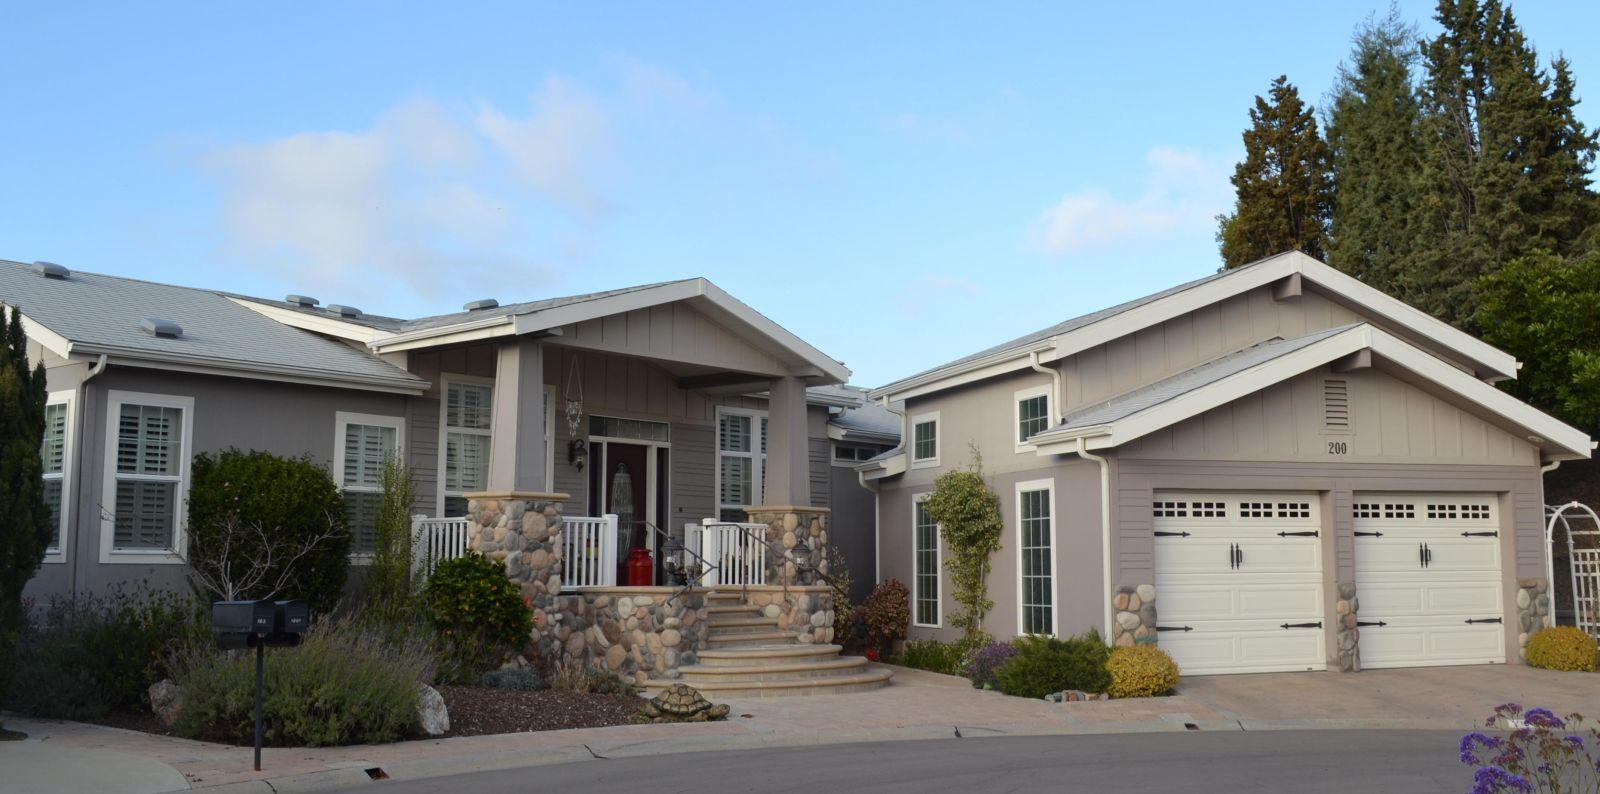 Many Purchasers New Manufactured Homes Have Their